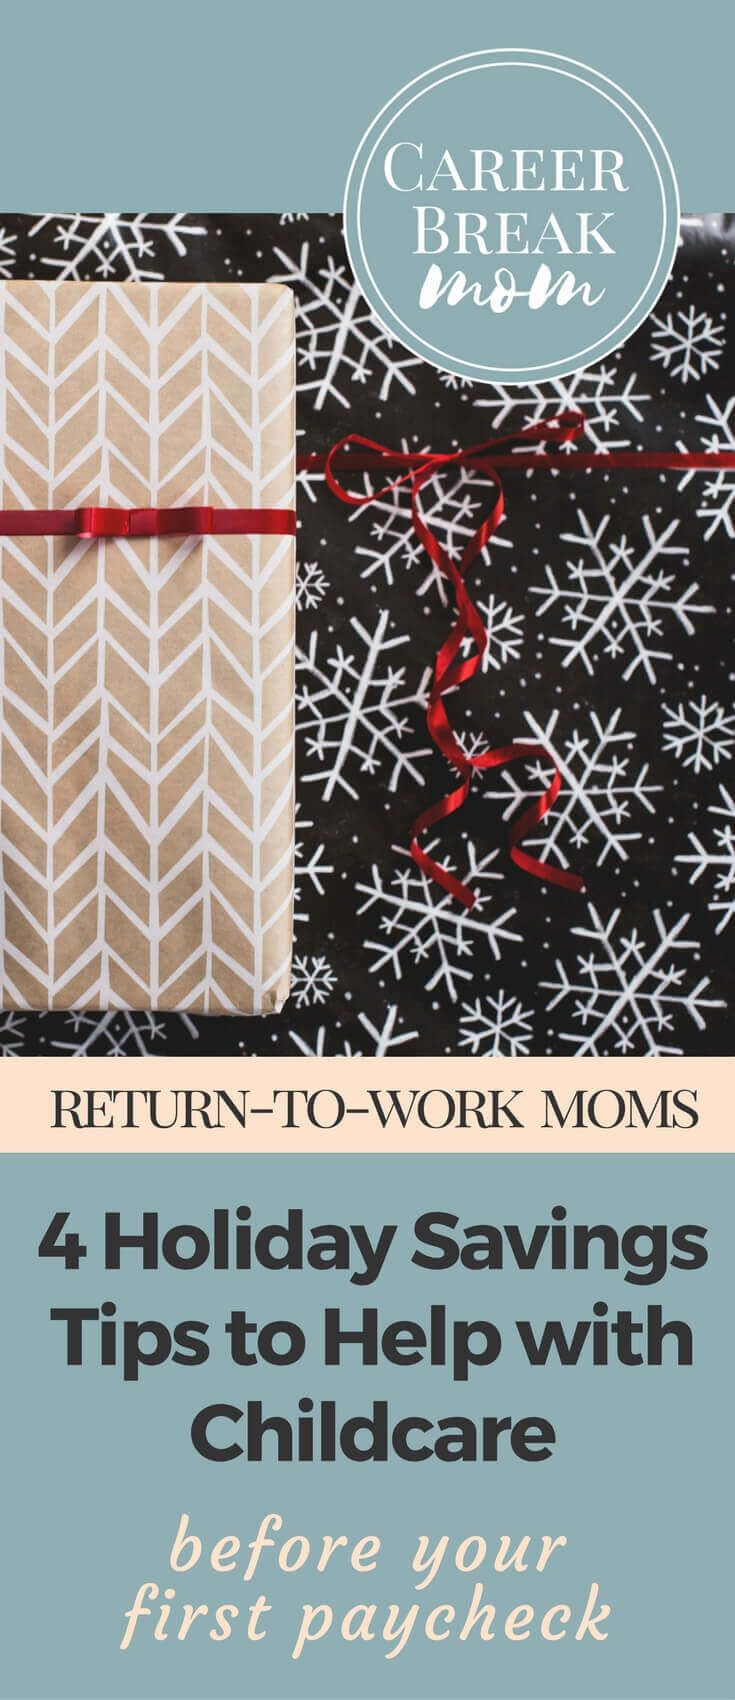 Four Holiday Season Tips to Set Aside Money to Help with Childcare as You Start Your Business or Job Hunt - CareerBreakMom.com - Looking to start a business or launch a job search after time away from your career? Take a few minutes to add a few thrifty habits into your holiday season shopping, and you'll find some extra cash that you can put toward your business, a new wardrobe or to help you cover childcare costs before you get that first paycheck!